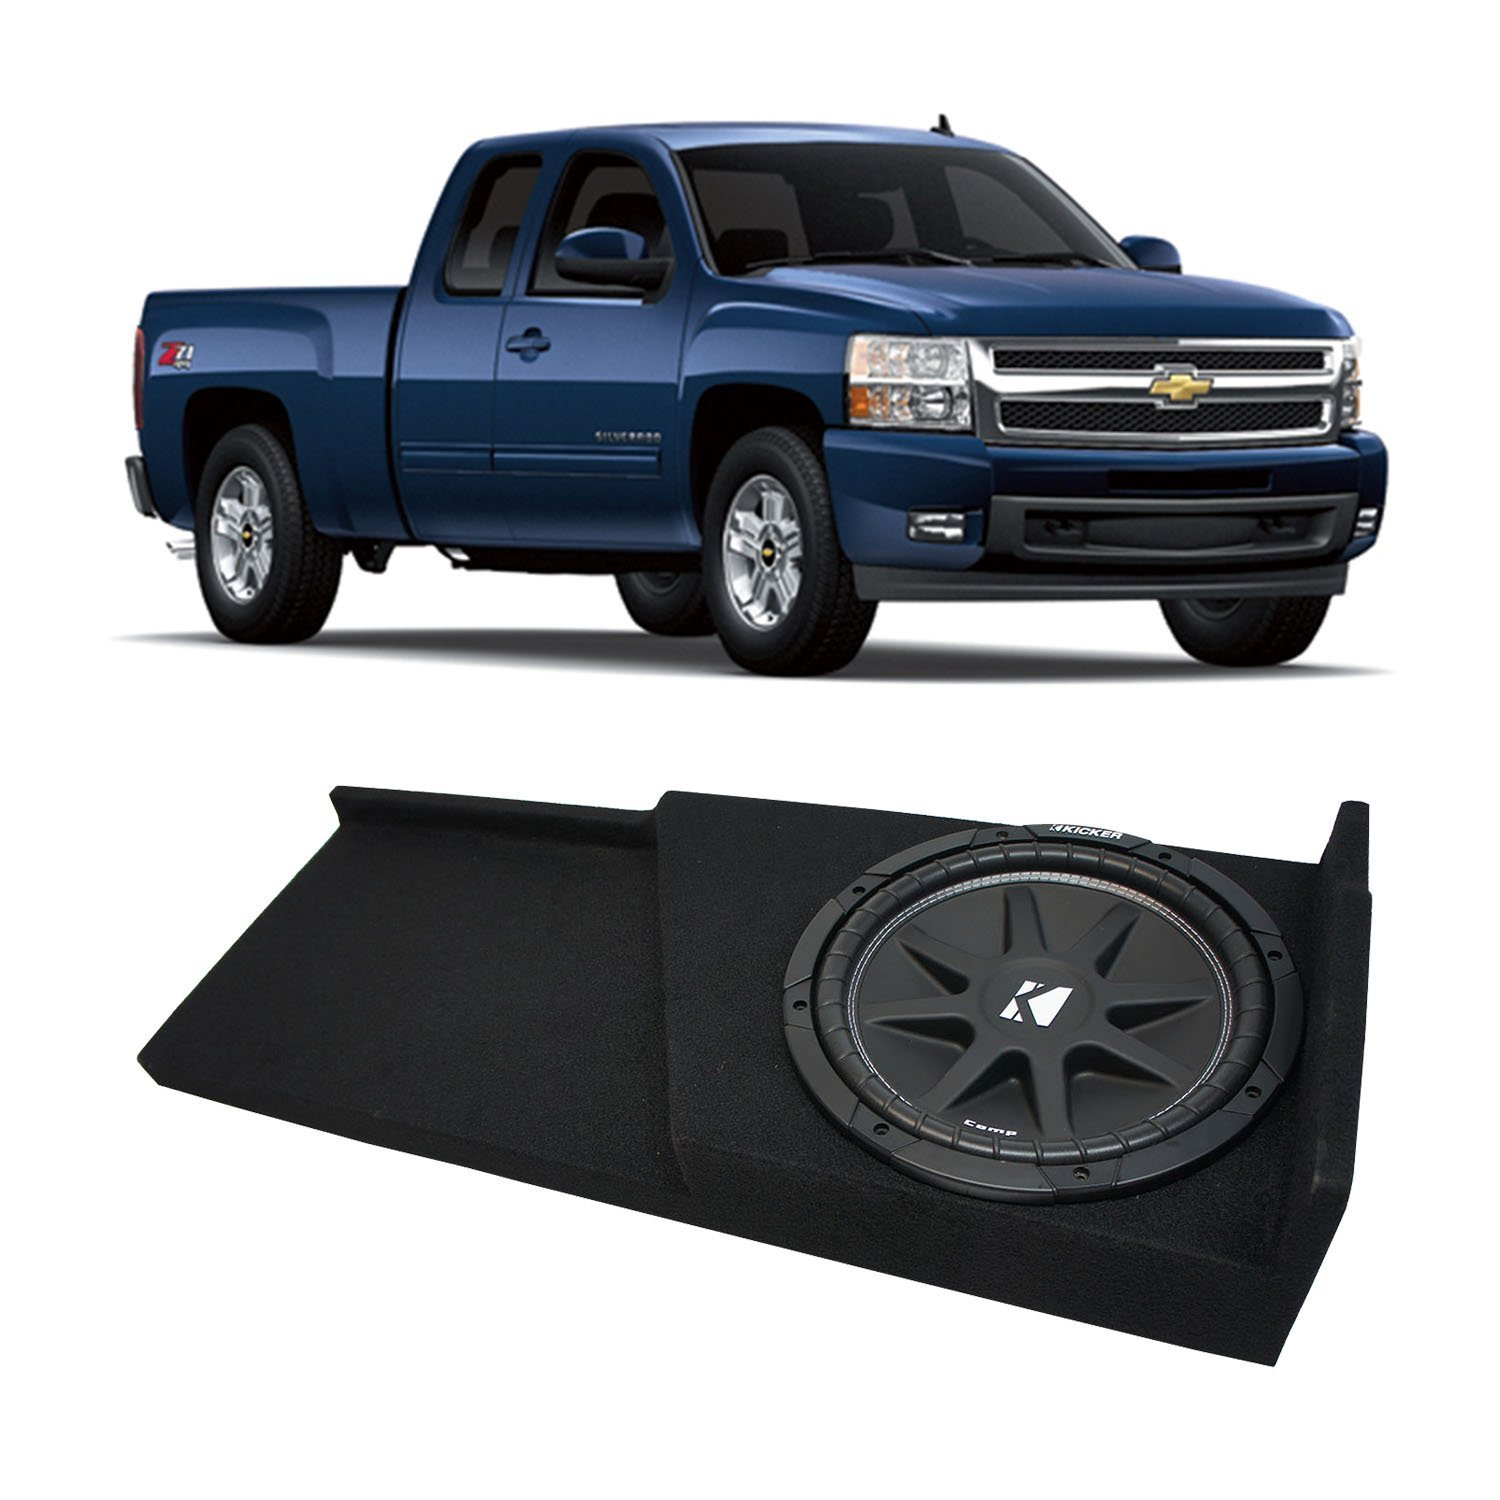 2007-2013 Chevy Silverado Ext Cab Truck Kicker Comp C12 Single 12 Sub Box Enclosure - Final 4 Ohm